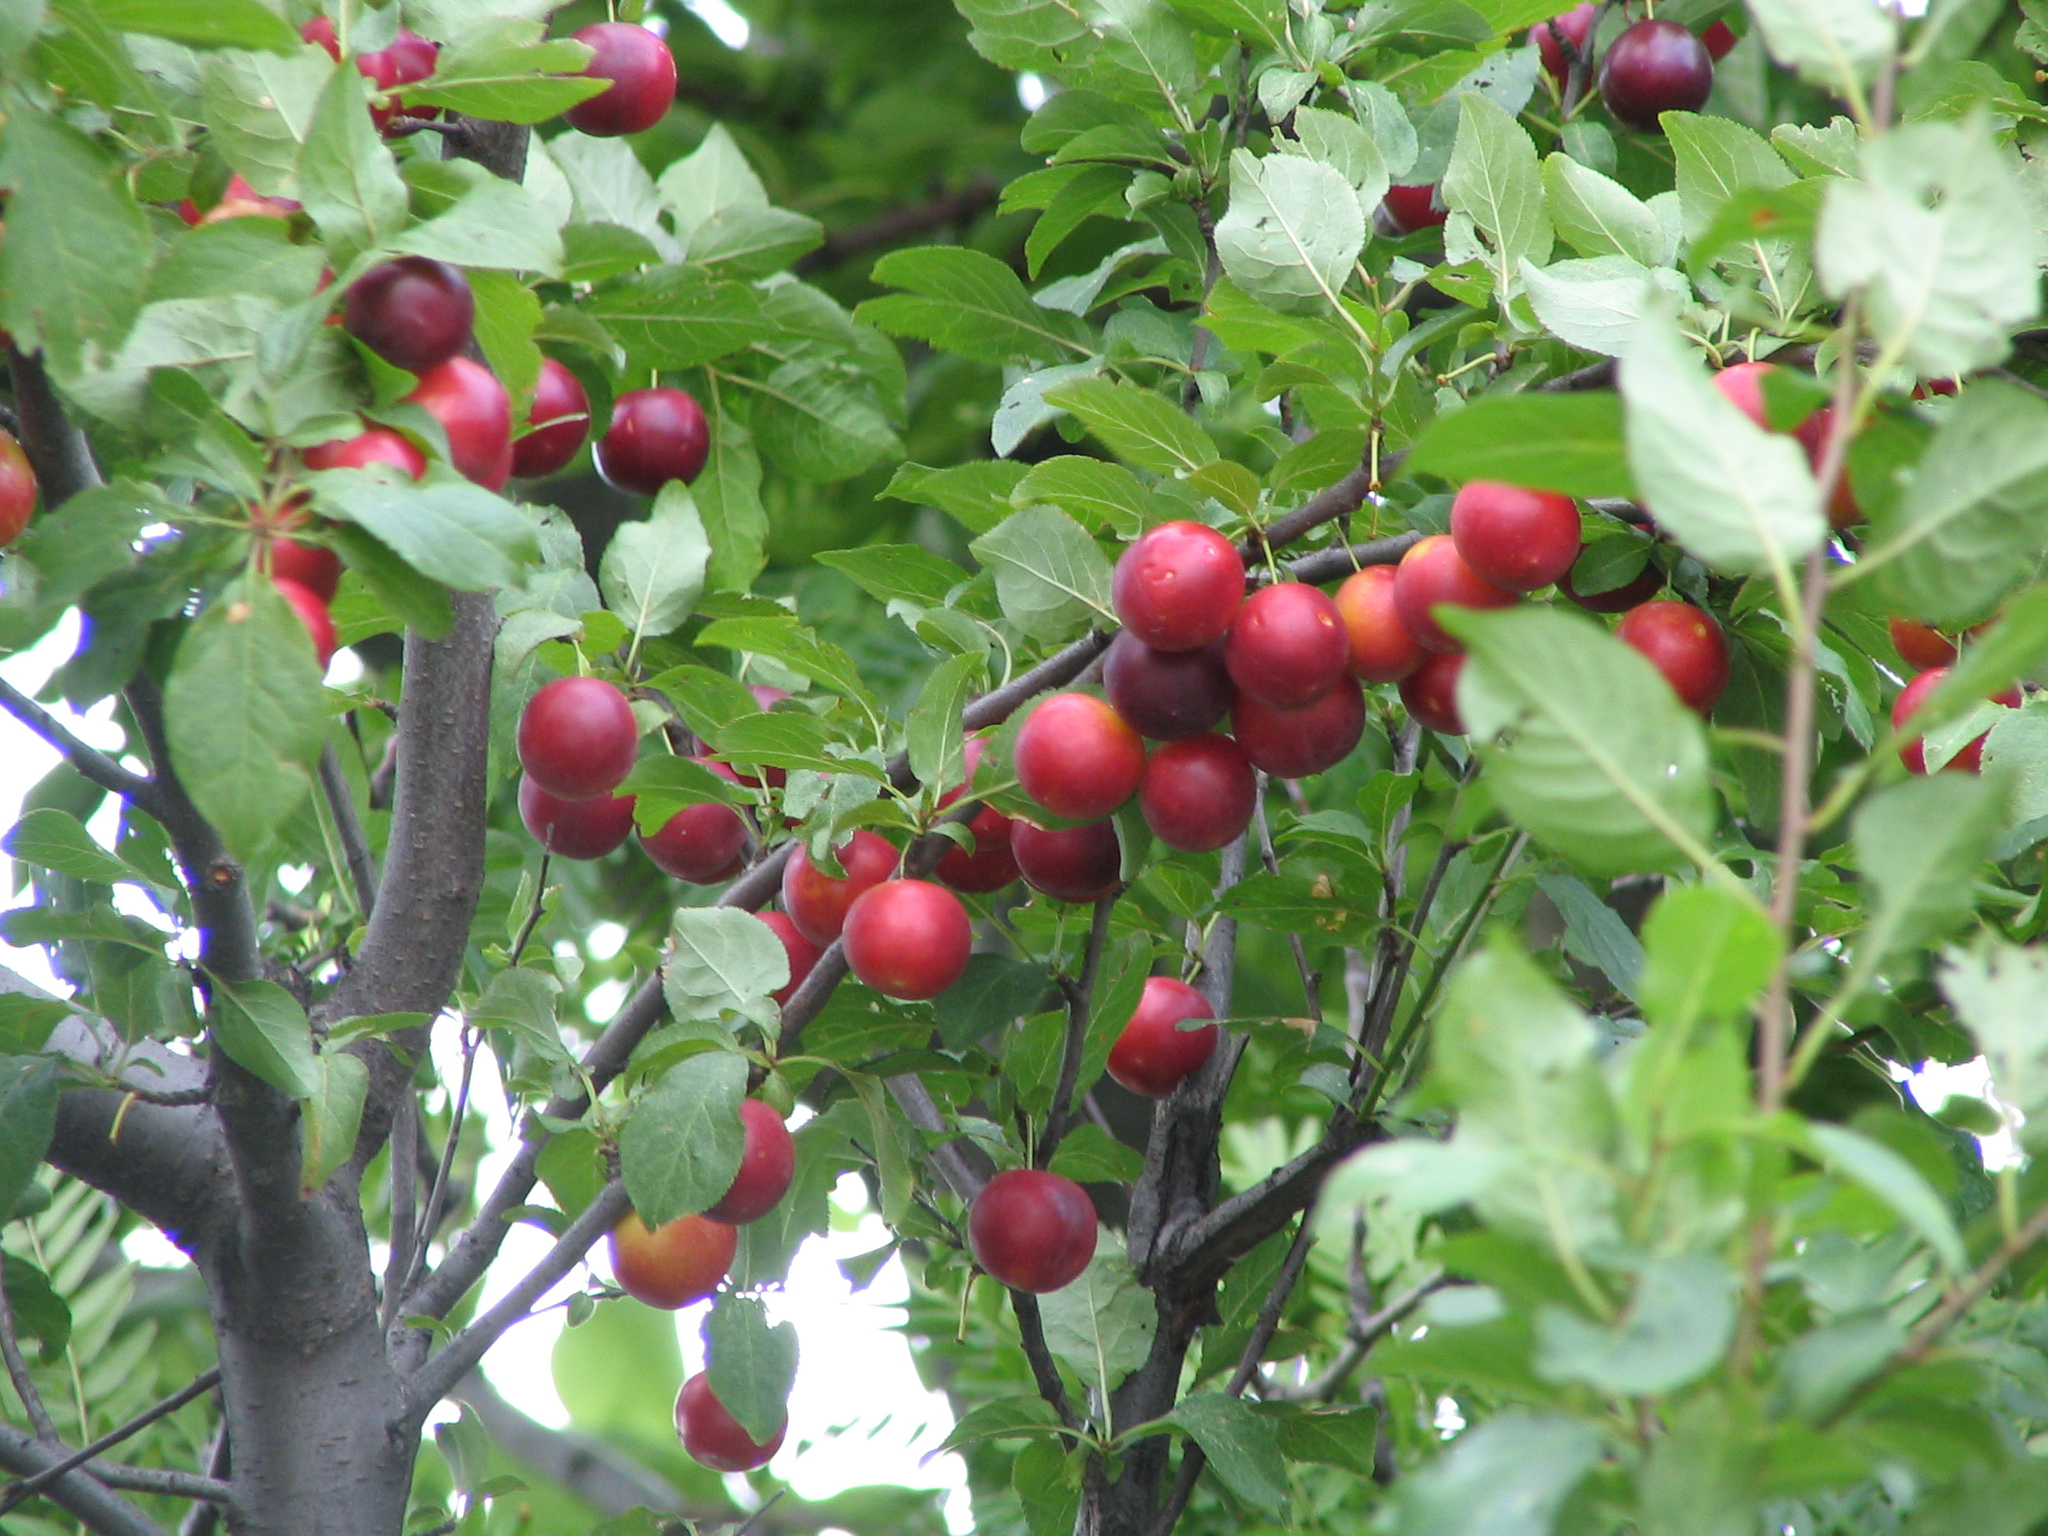 what kind of fruit tree/fruit is this?  fruits  ask metafilter, Beautiful flower